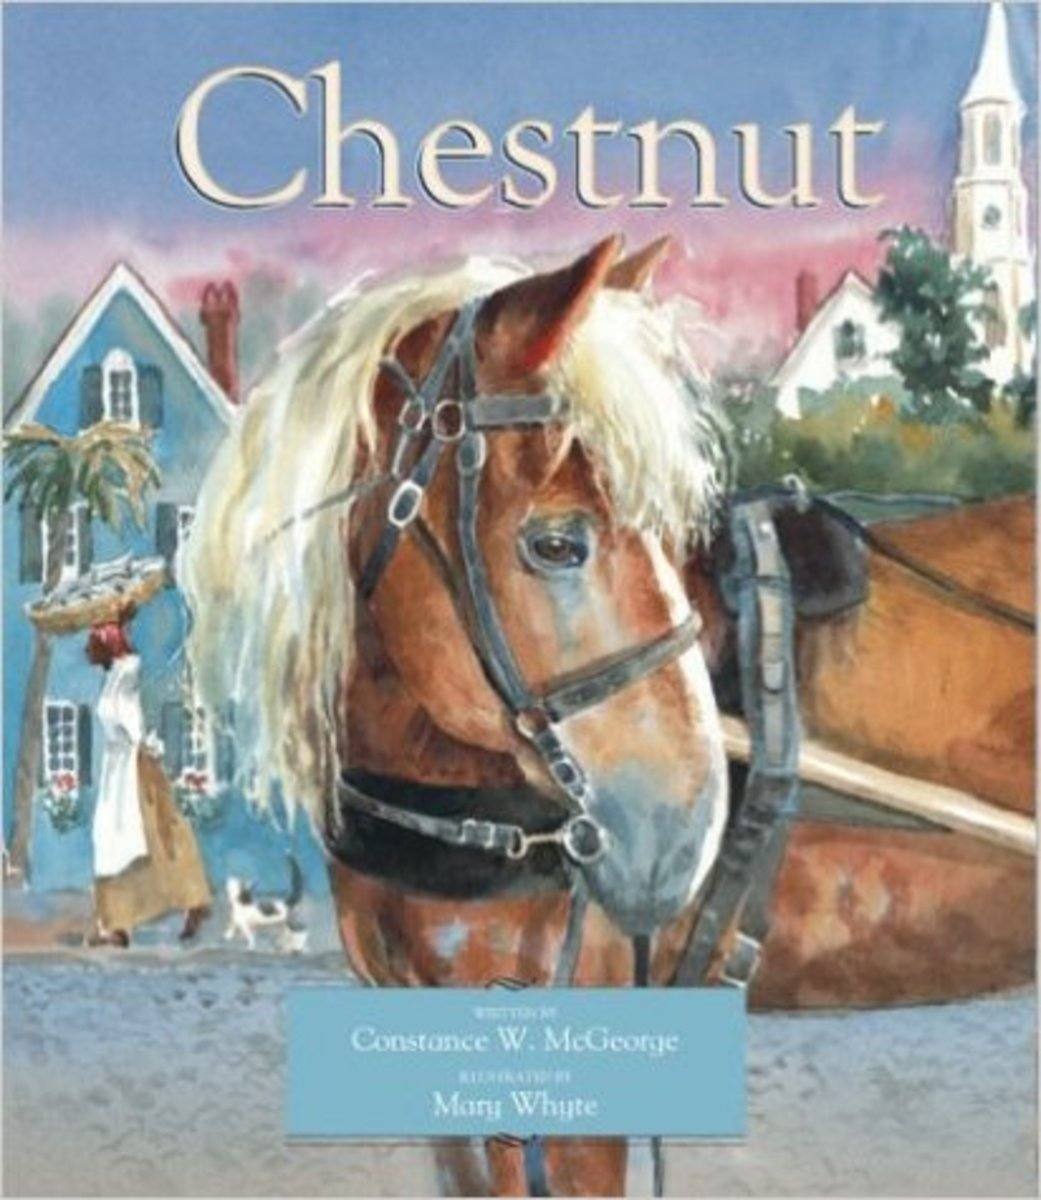 Chestnut by Constance W. McGeorge